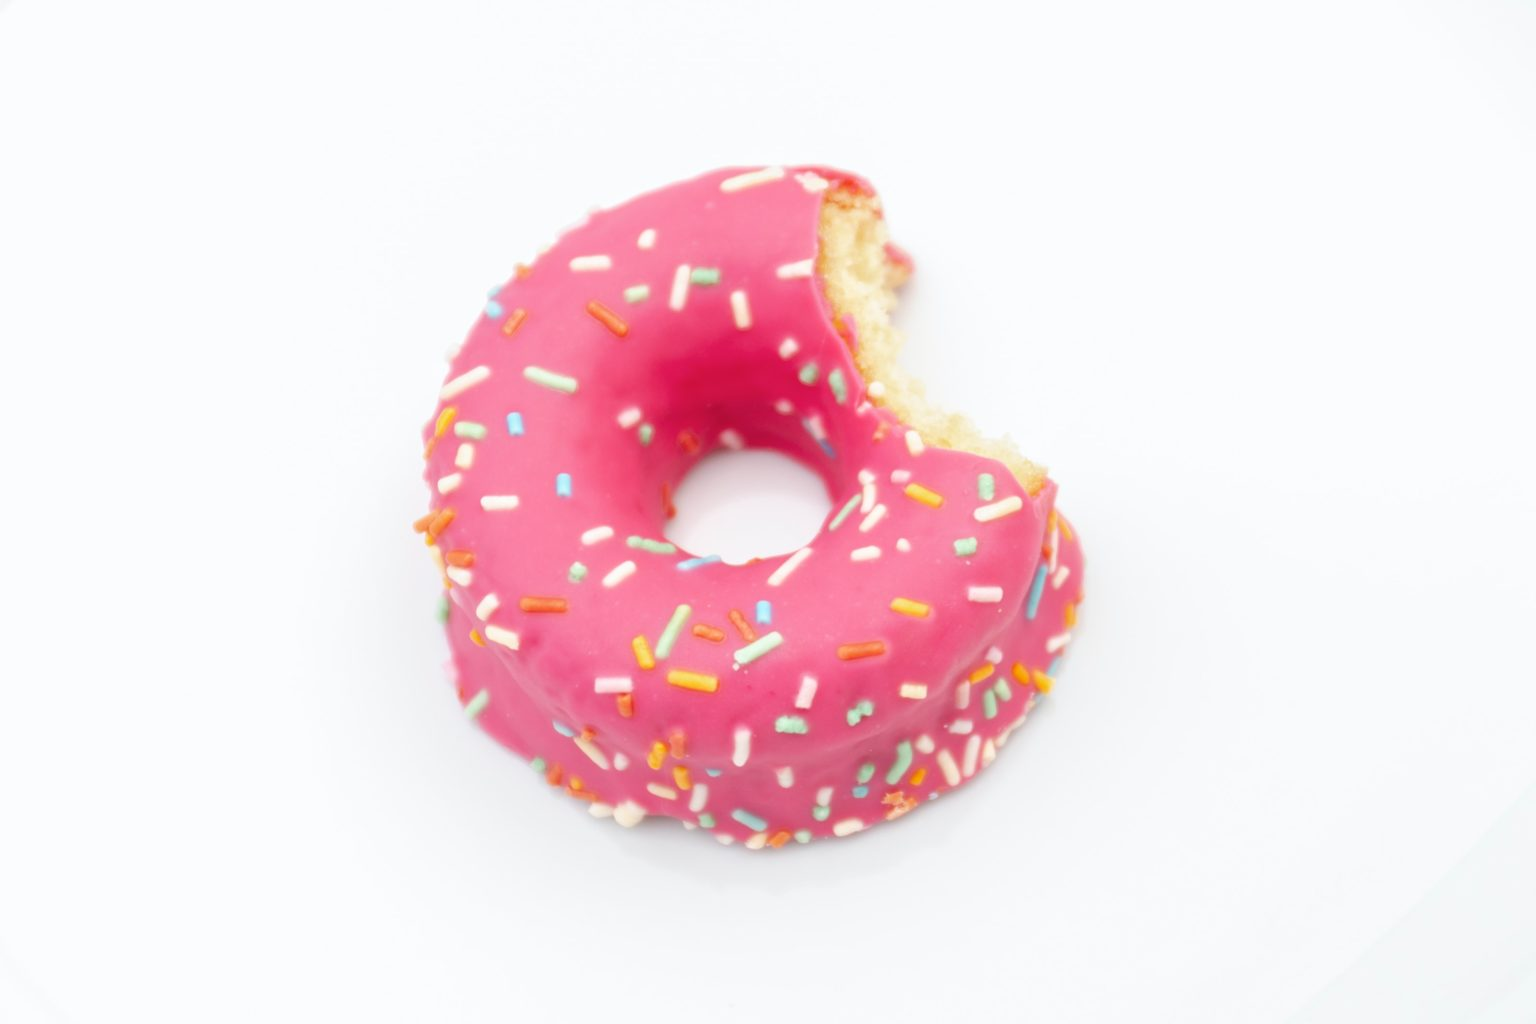 round doughnuts with sprinkles